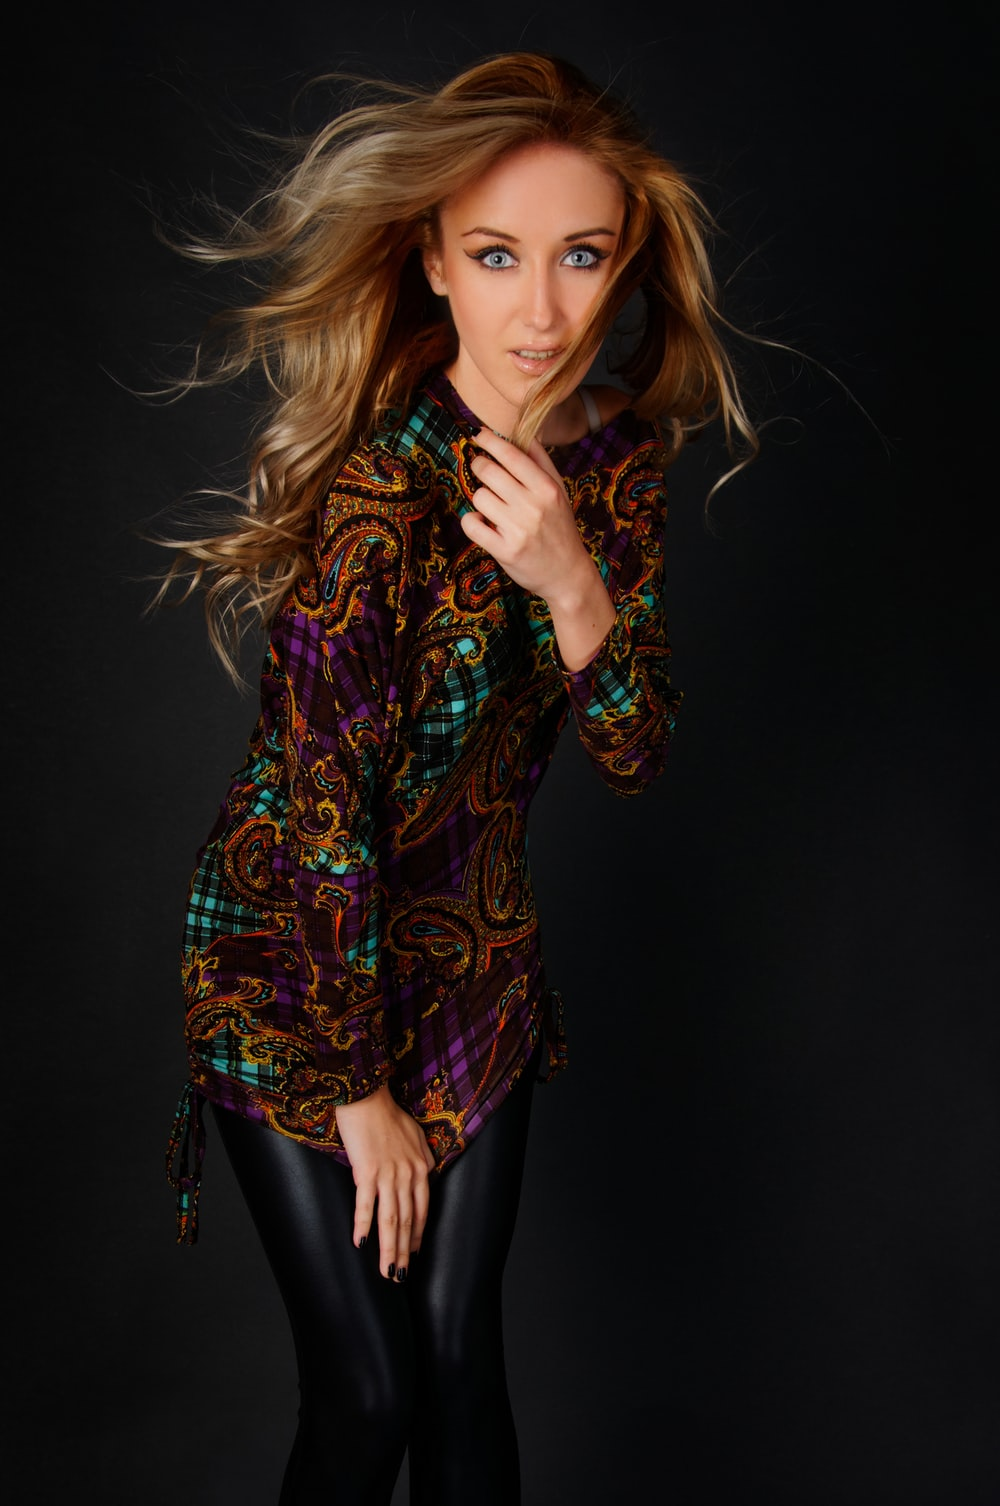 woman wearing multicolored long-sleeved top holding hair